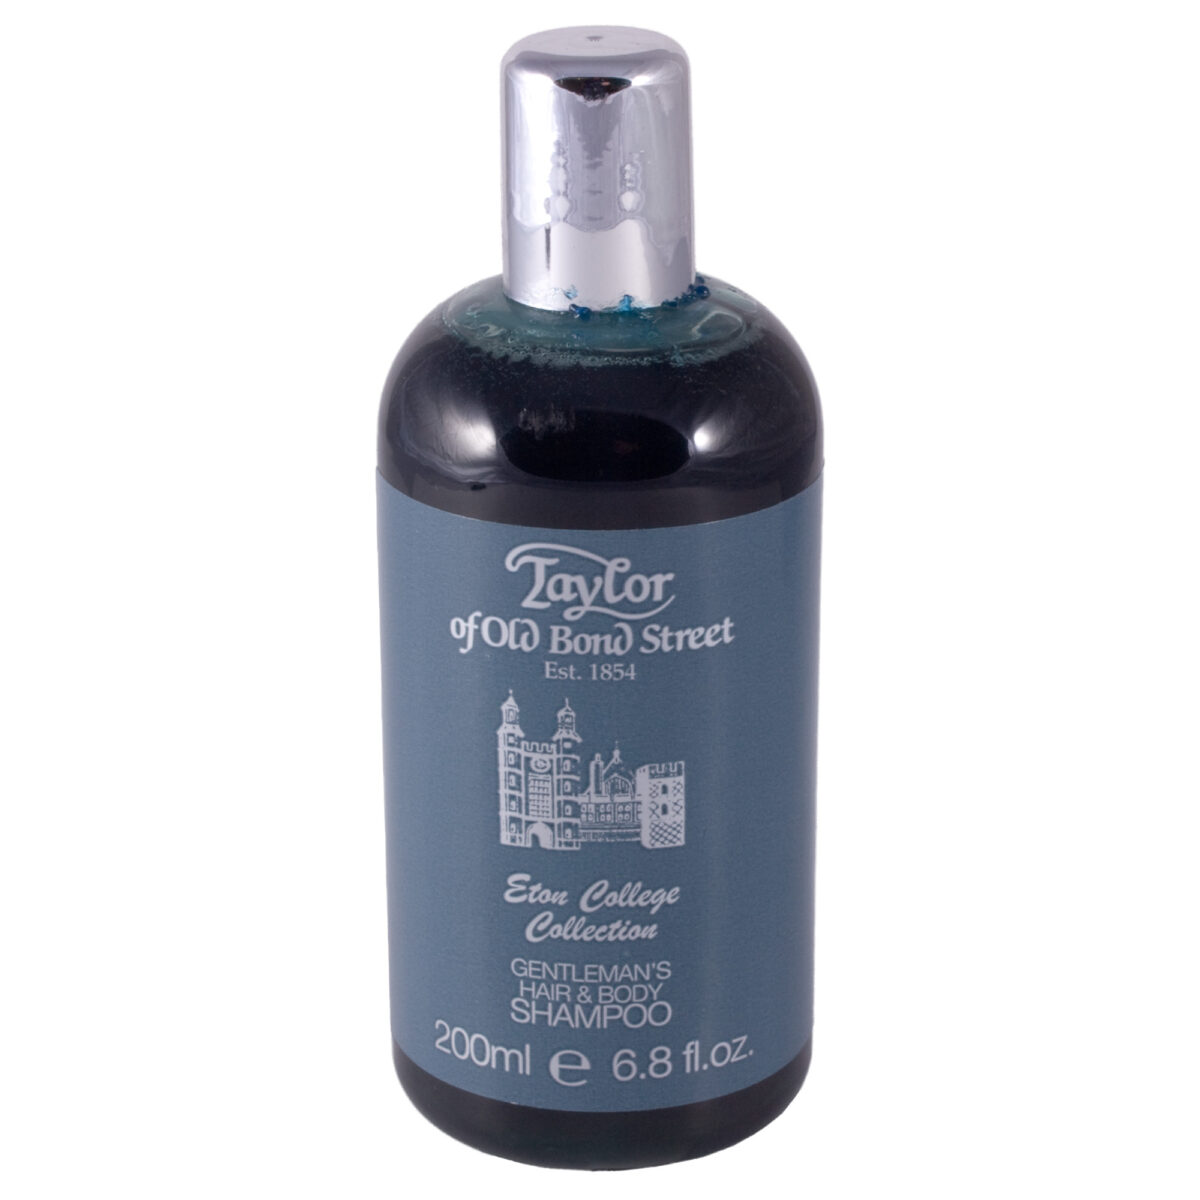 Taylor of Old Bond street hair and body wash shampoo